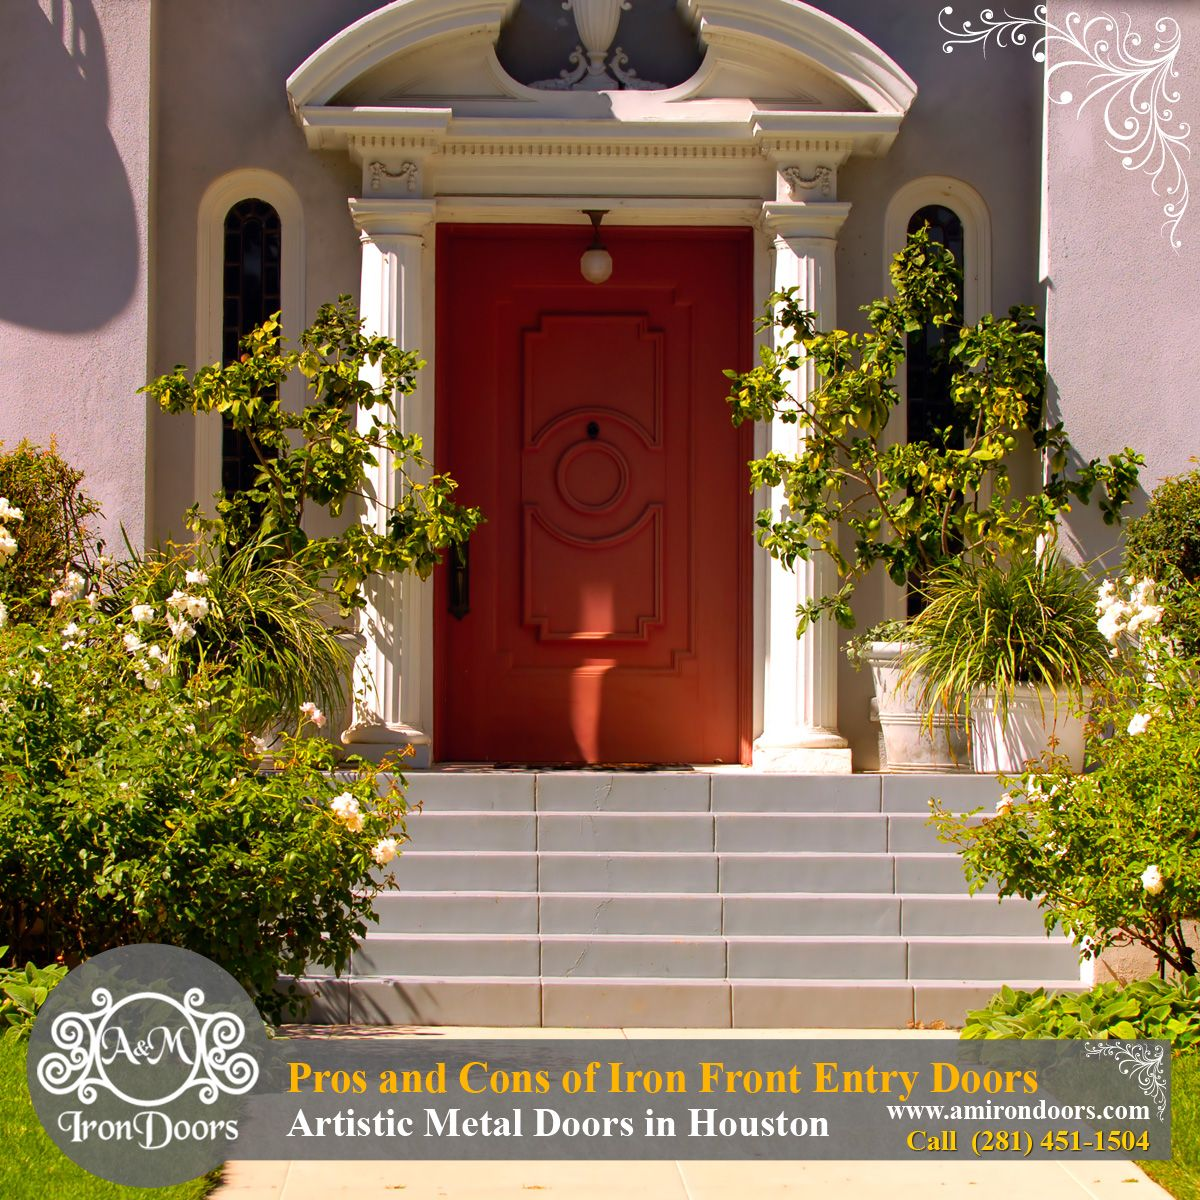 Pros and Cons of Iron Front Entry Doors for Your Home - Artistic ...